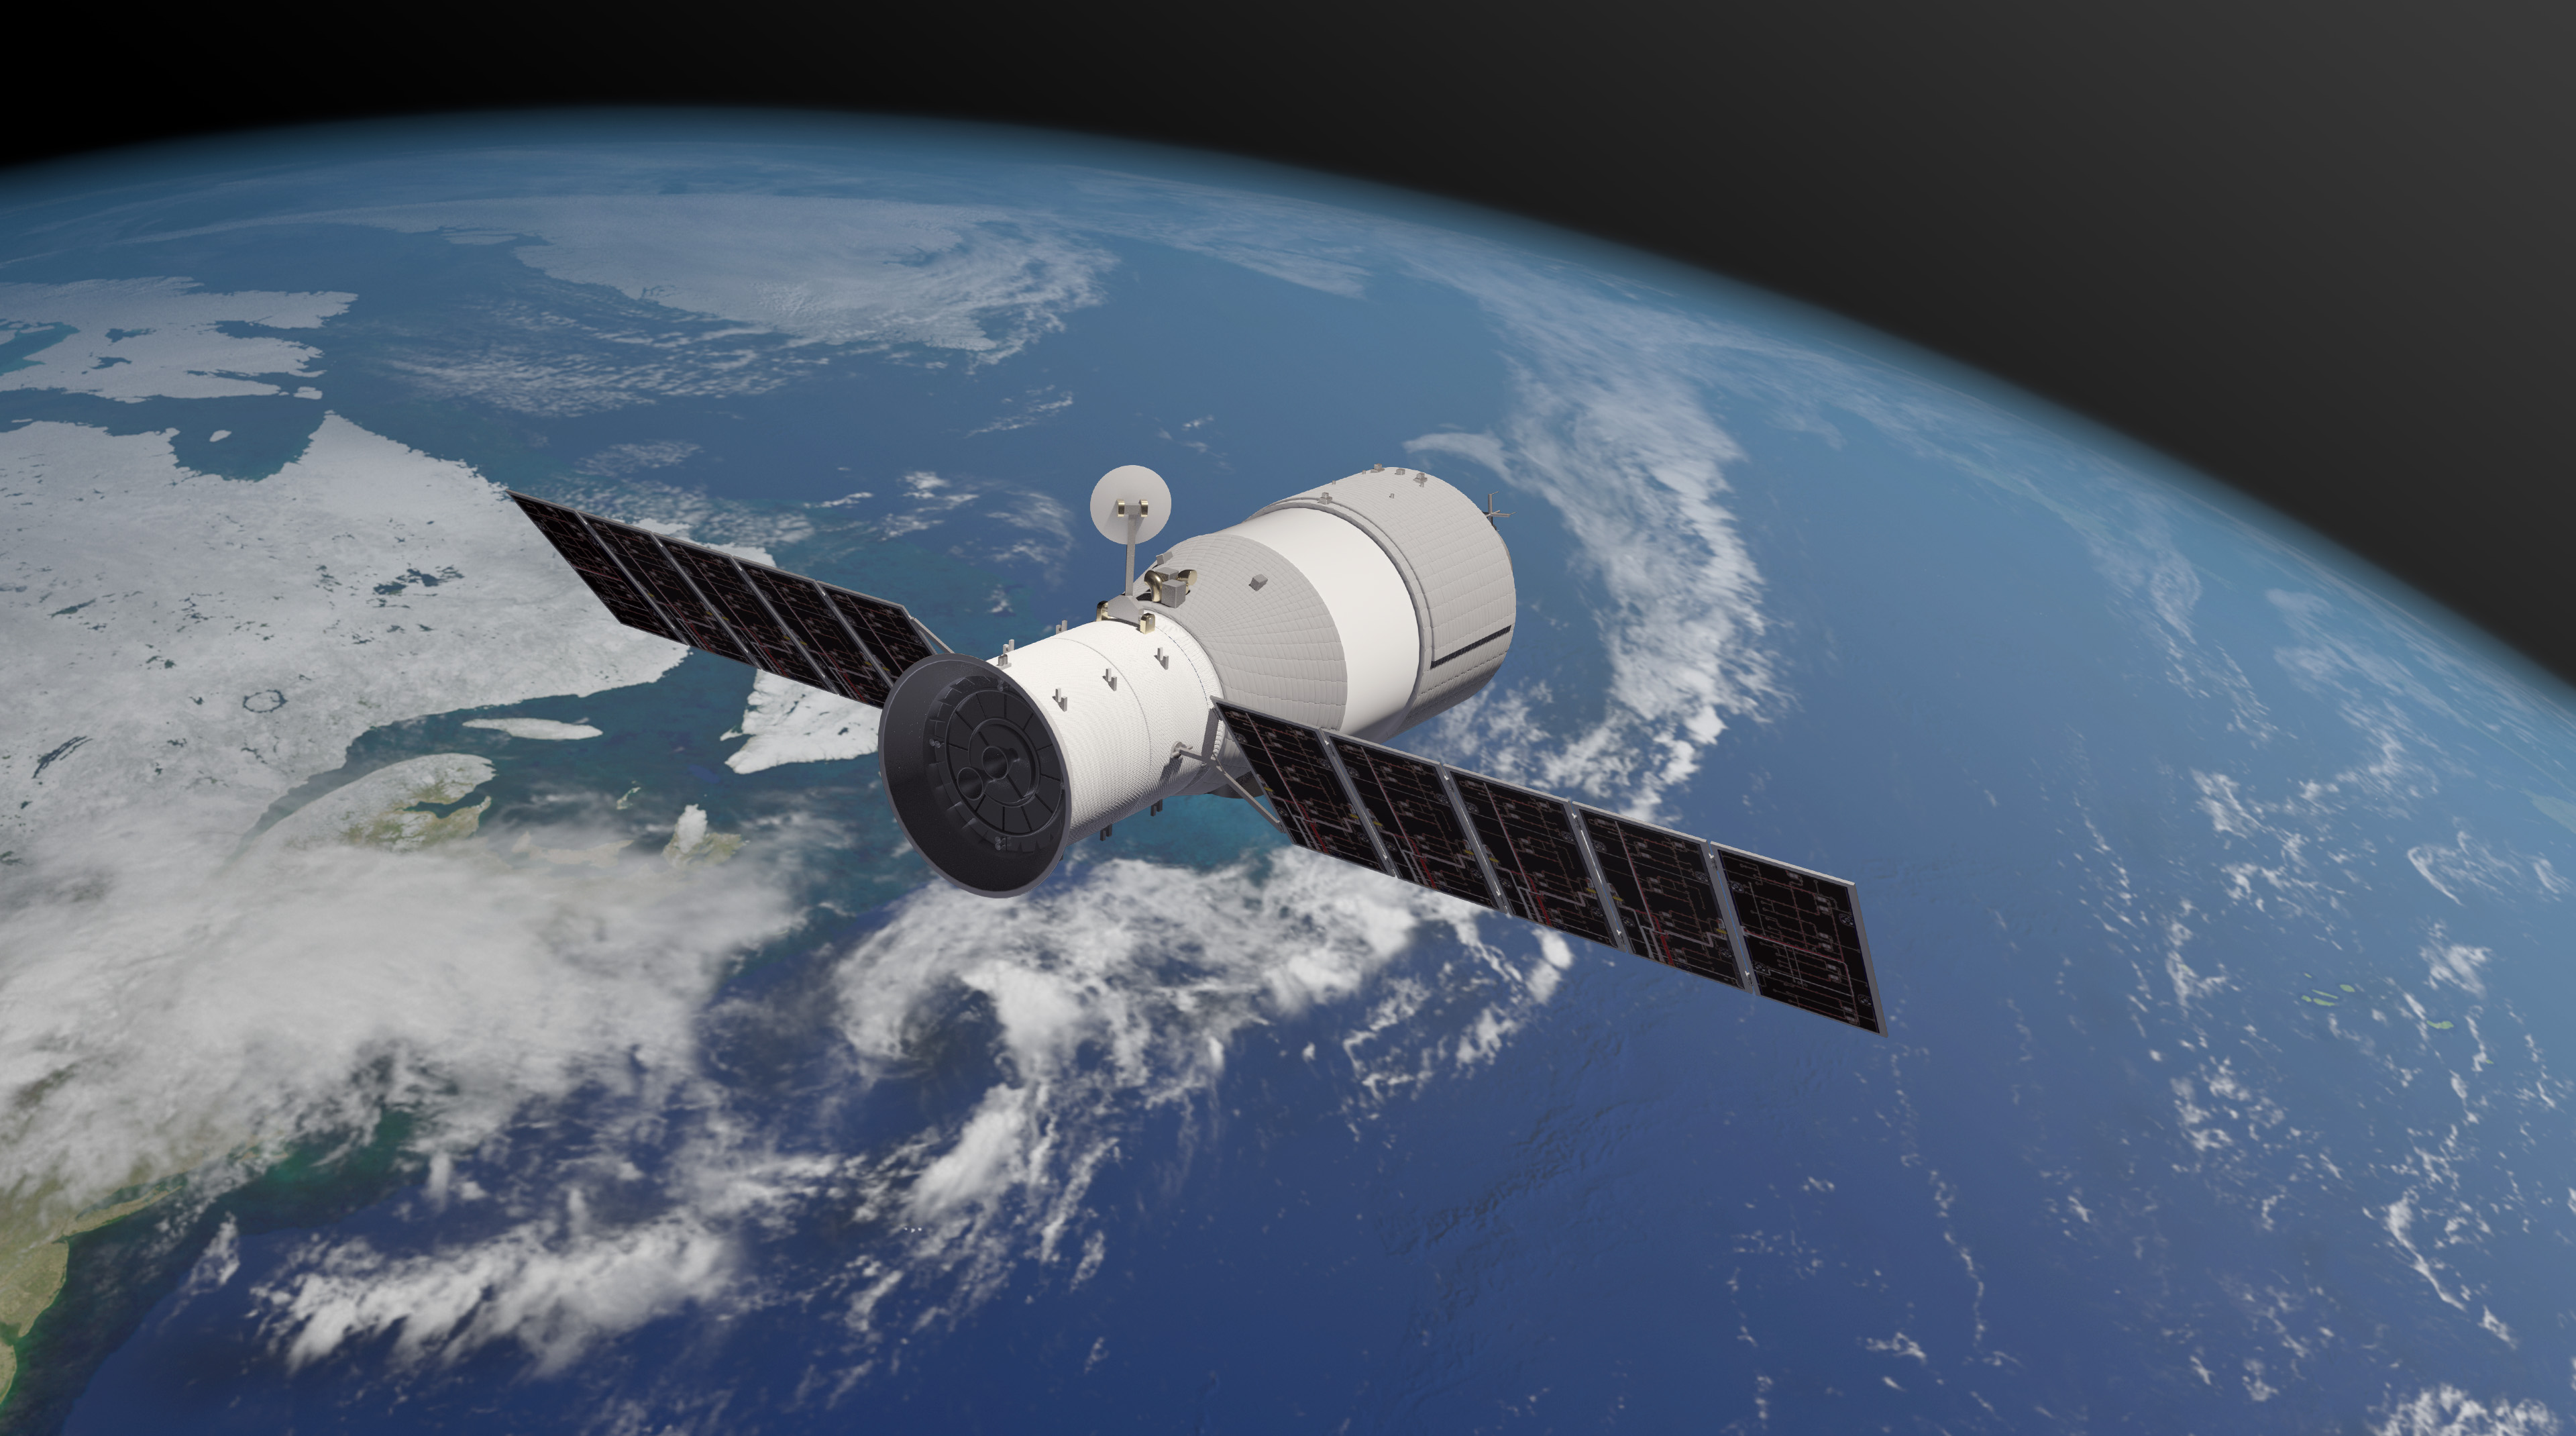 China's out-of-control space station harmlessly breaks up over the Pacific Ocean